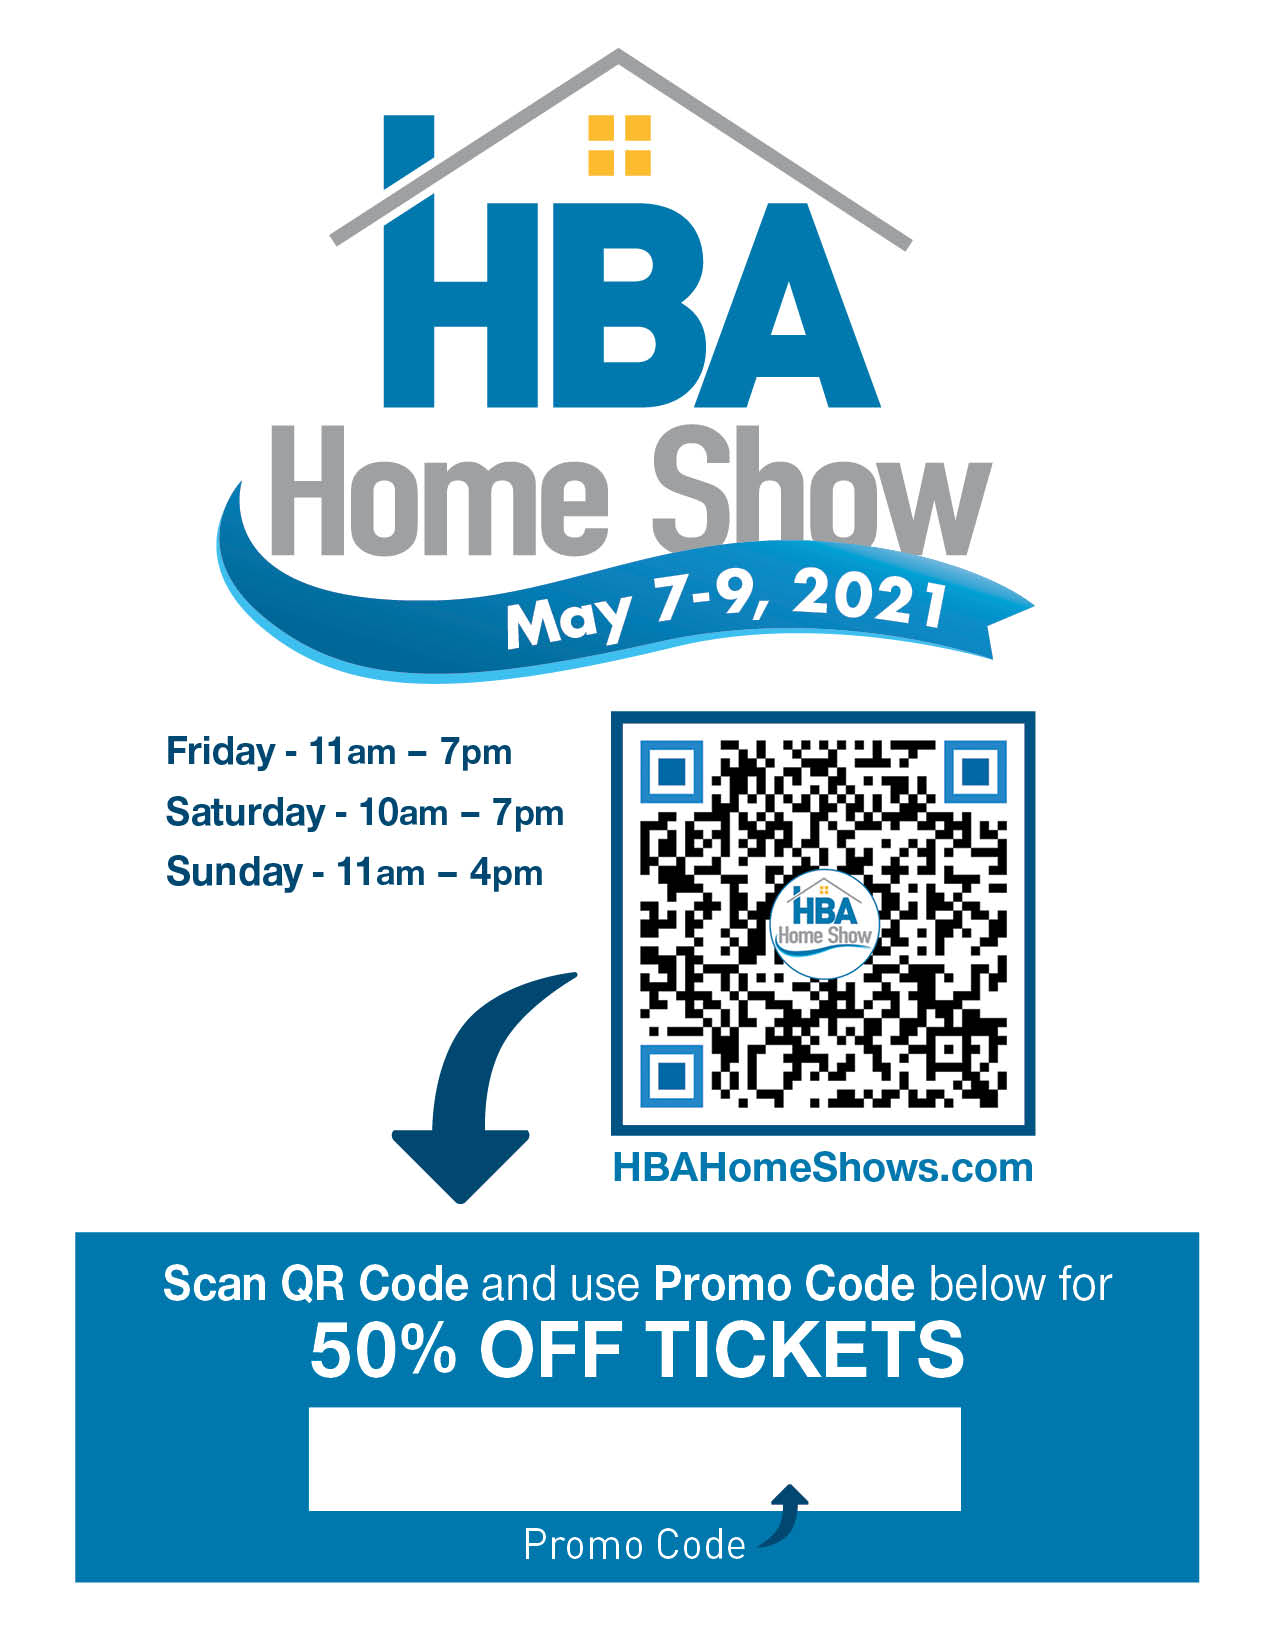 Home Show Tickets Flyer - Use Your Promo Code